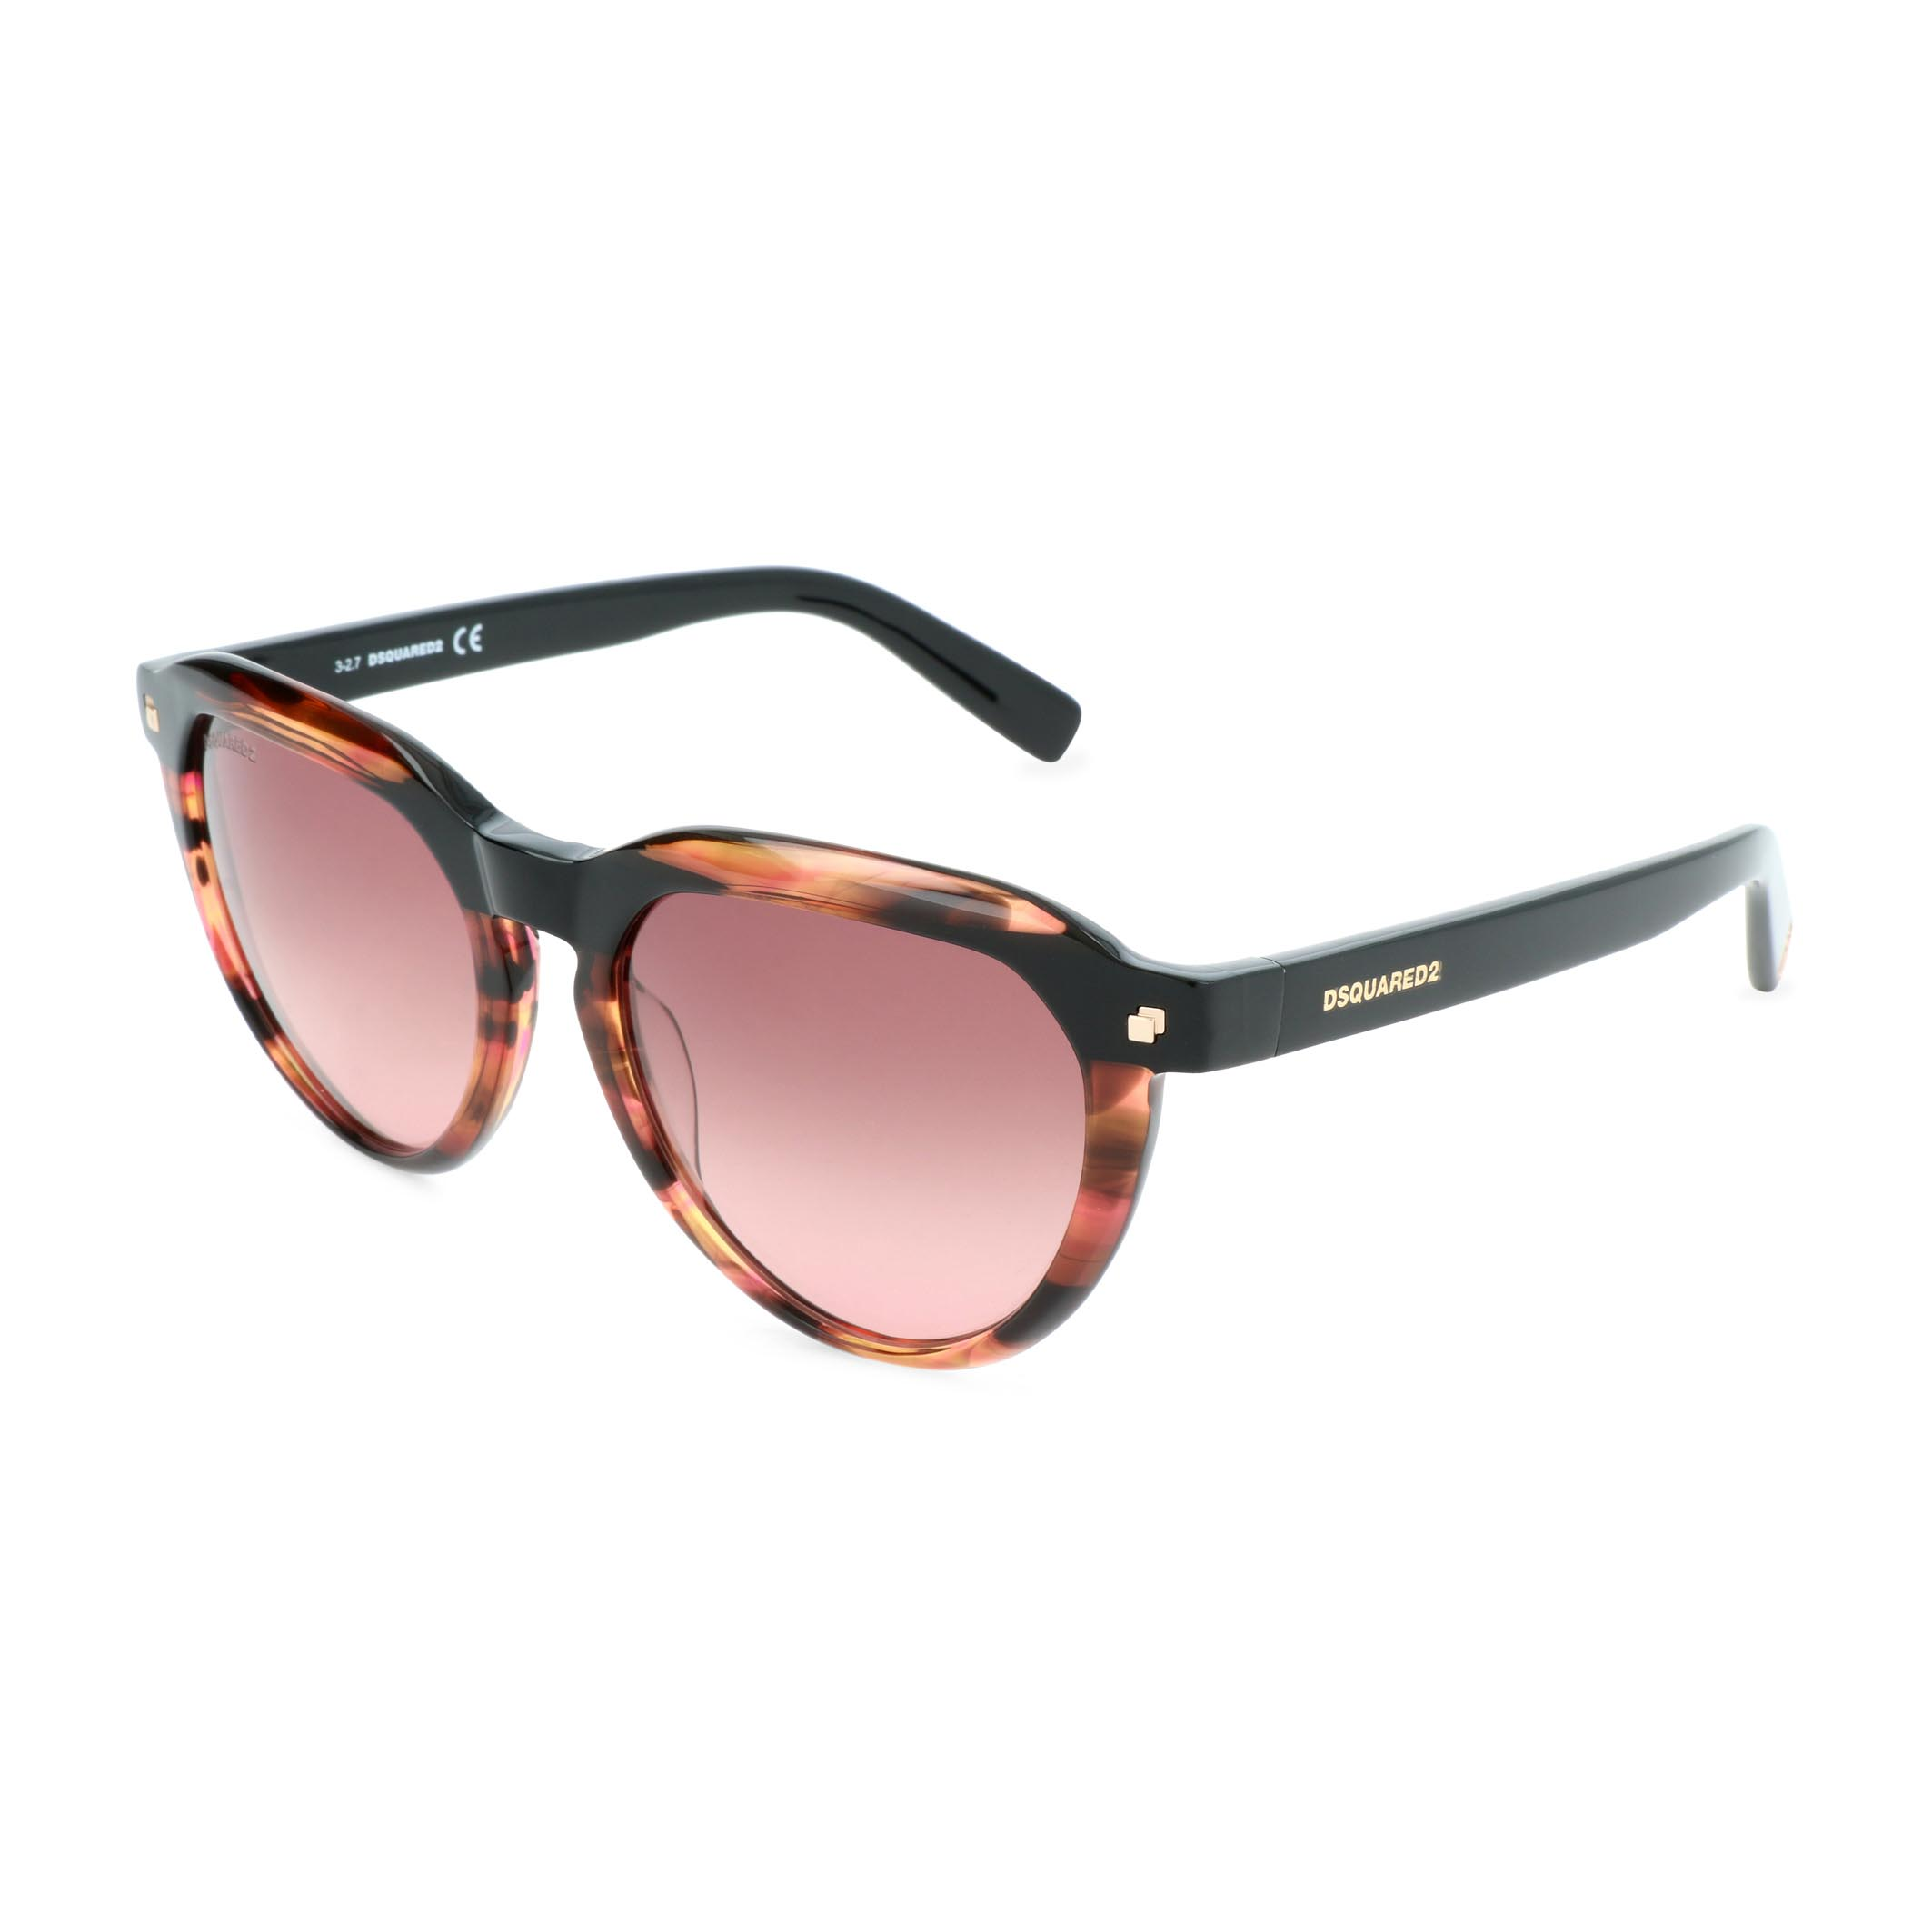 Dsquared2 Women's Sunglasses Brown DQ0287 - brown-1 NOSIZE